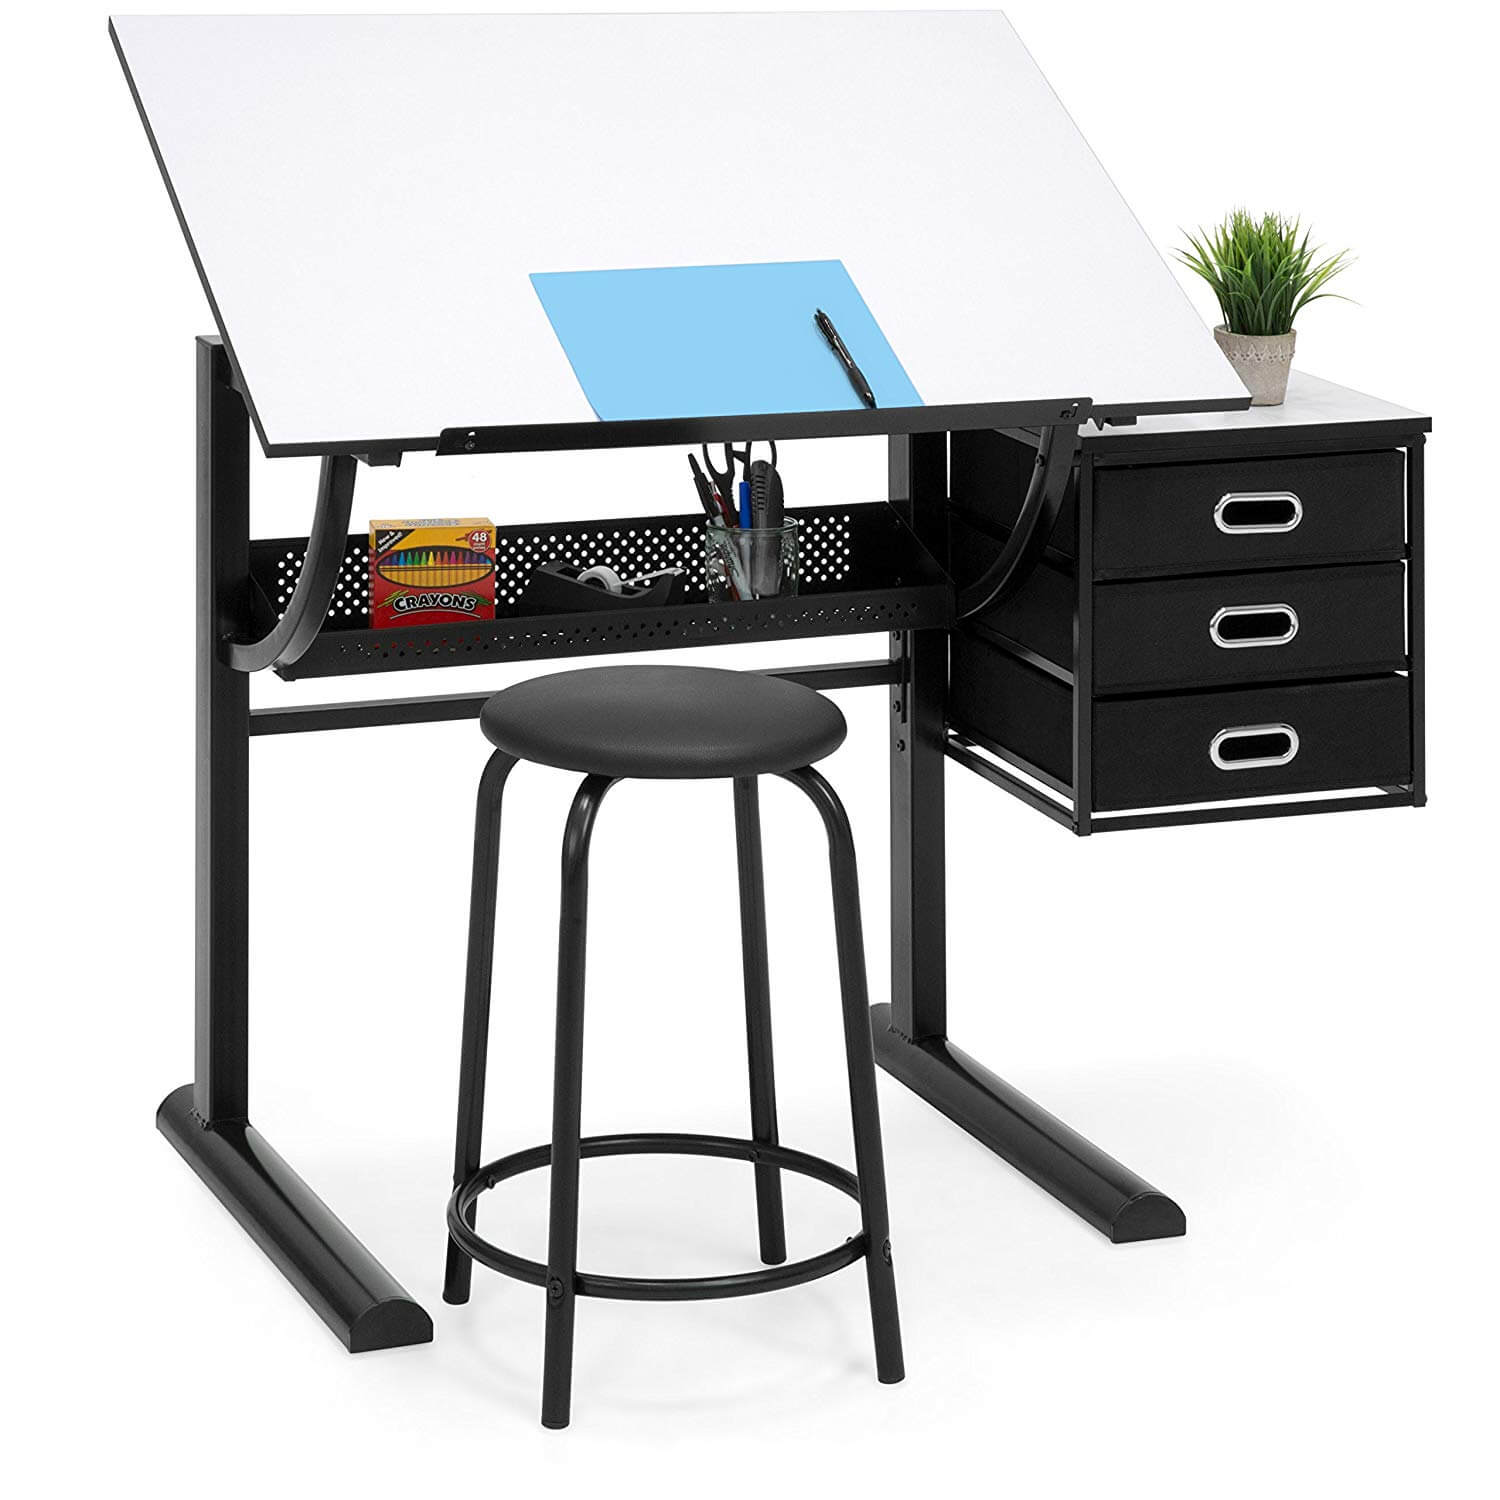 Best Choice Products Drawing Drafting Craft Art Table Folding Adjustable Desk